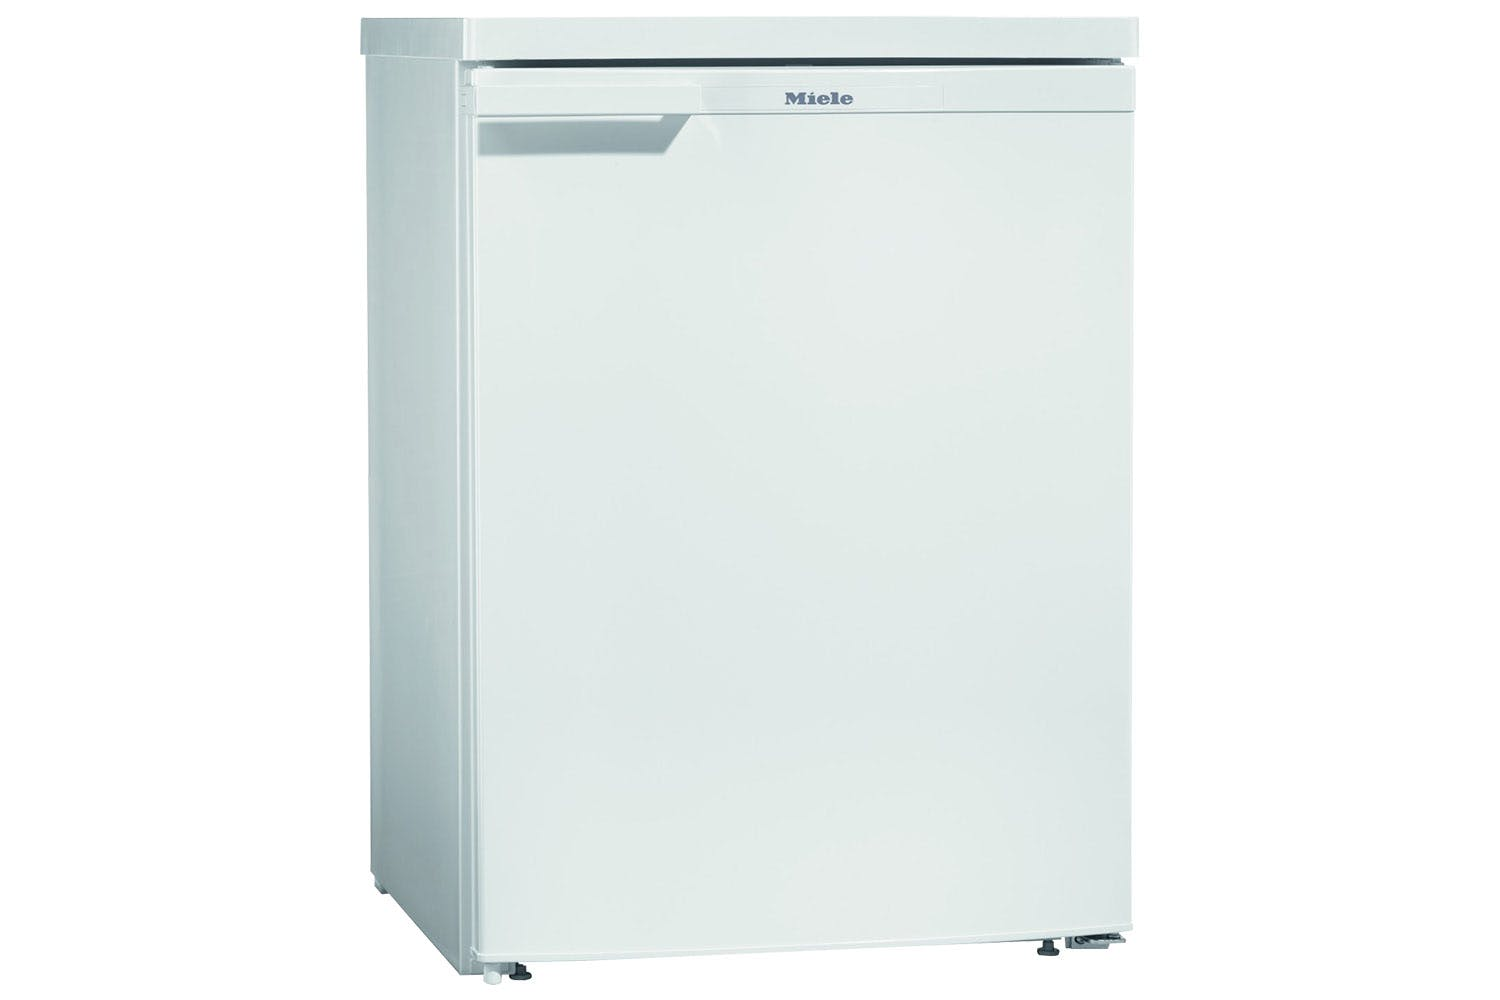 Miele K 12010 S-2  Freestanding refrigerator   with ComfortClean for easy cleaning at a favourable entry level price point